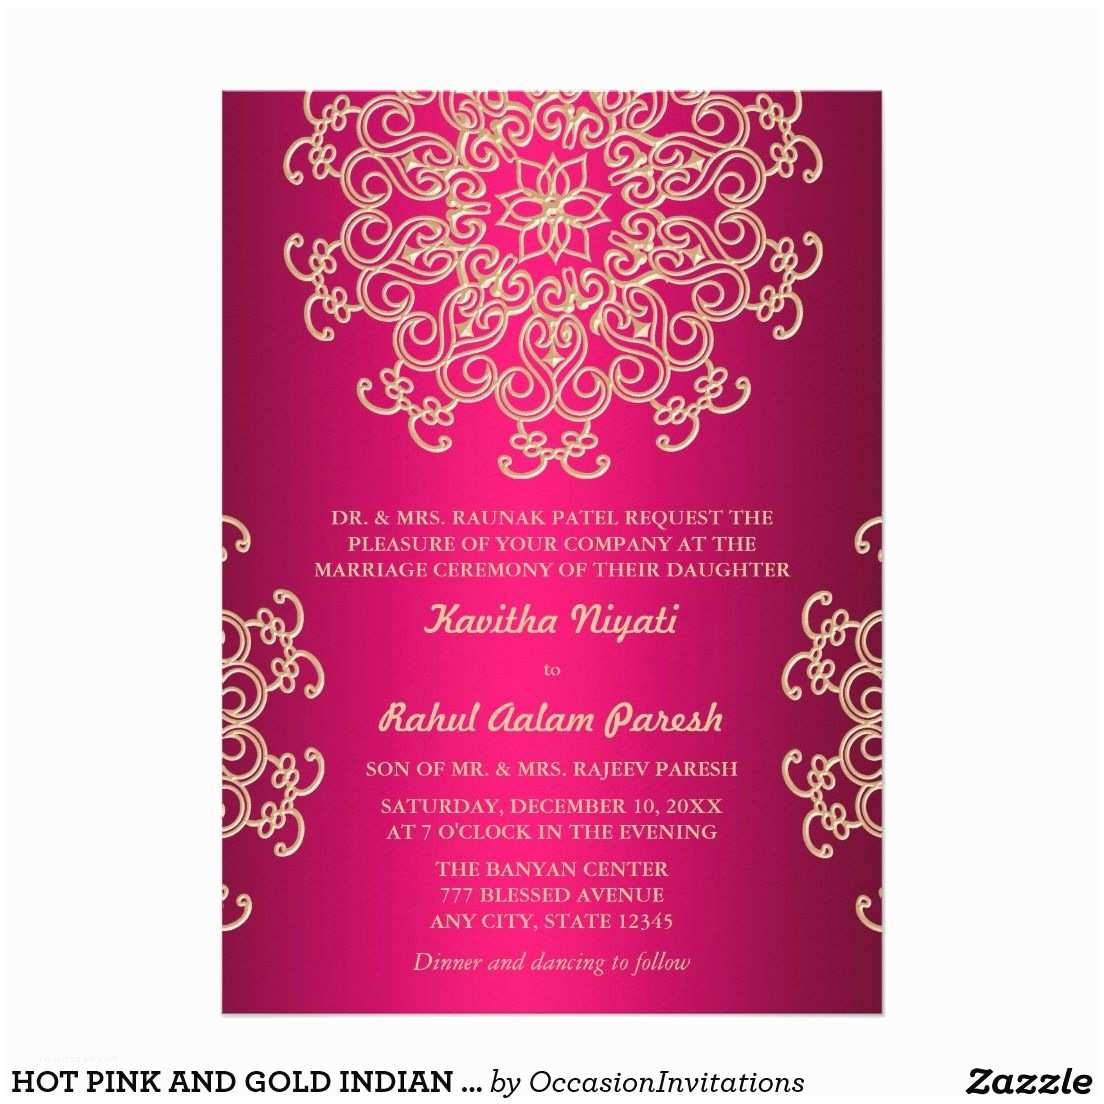 How to Create Indian Wedding Invitation Card Online for Free Hot Pink and Gold Indian Style Wedding Invitation